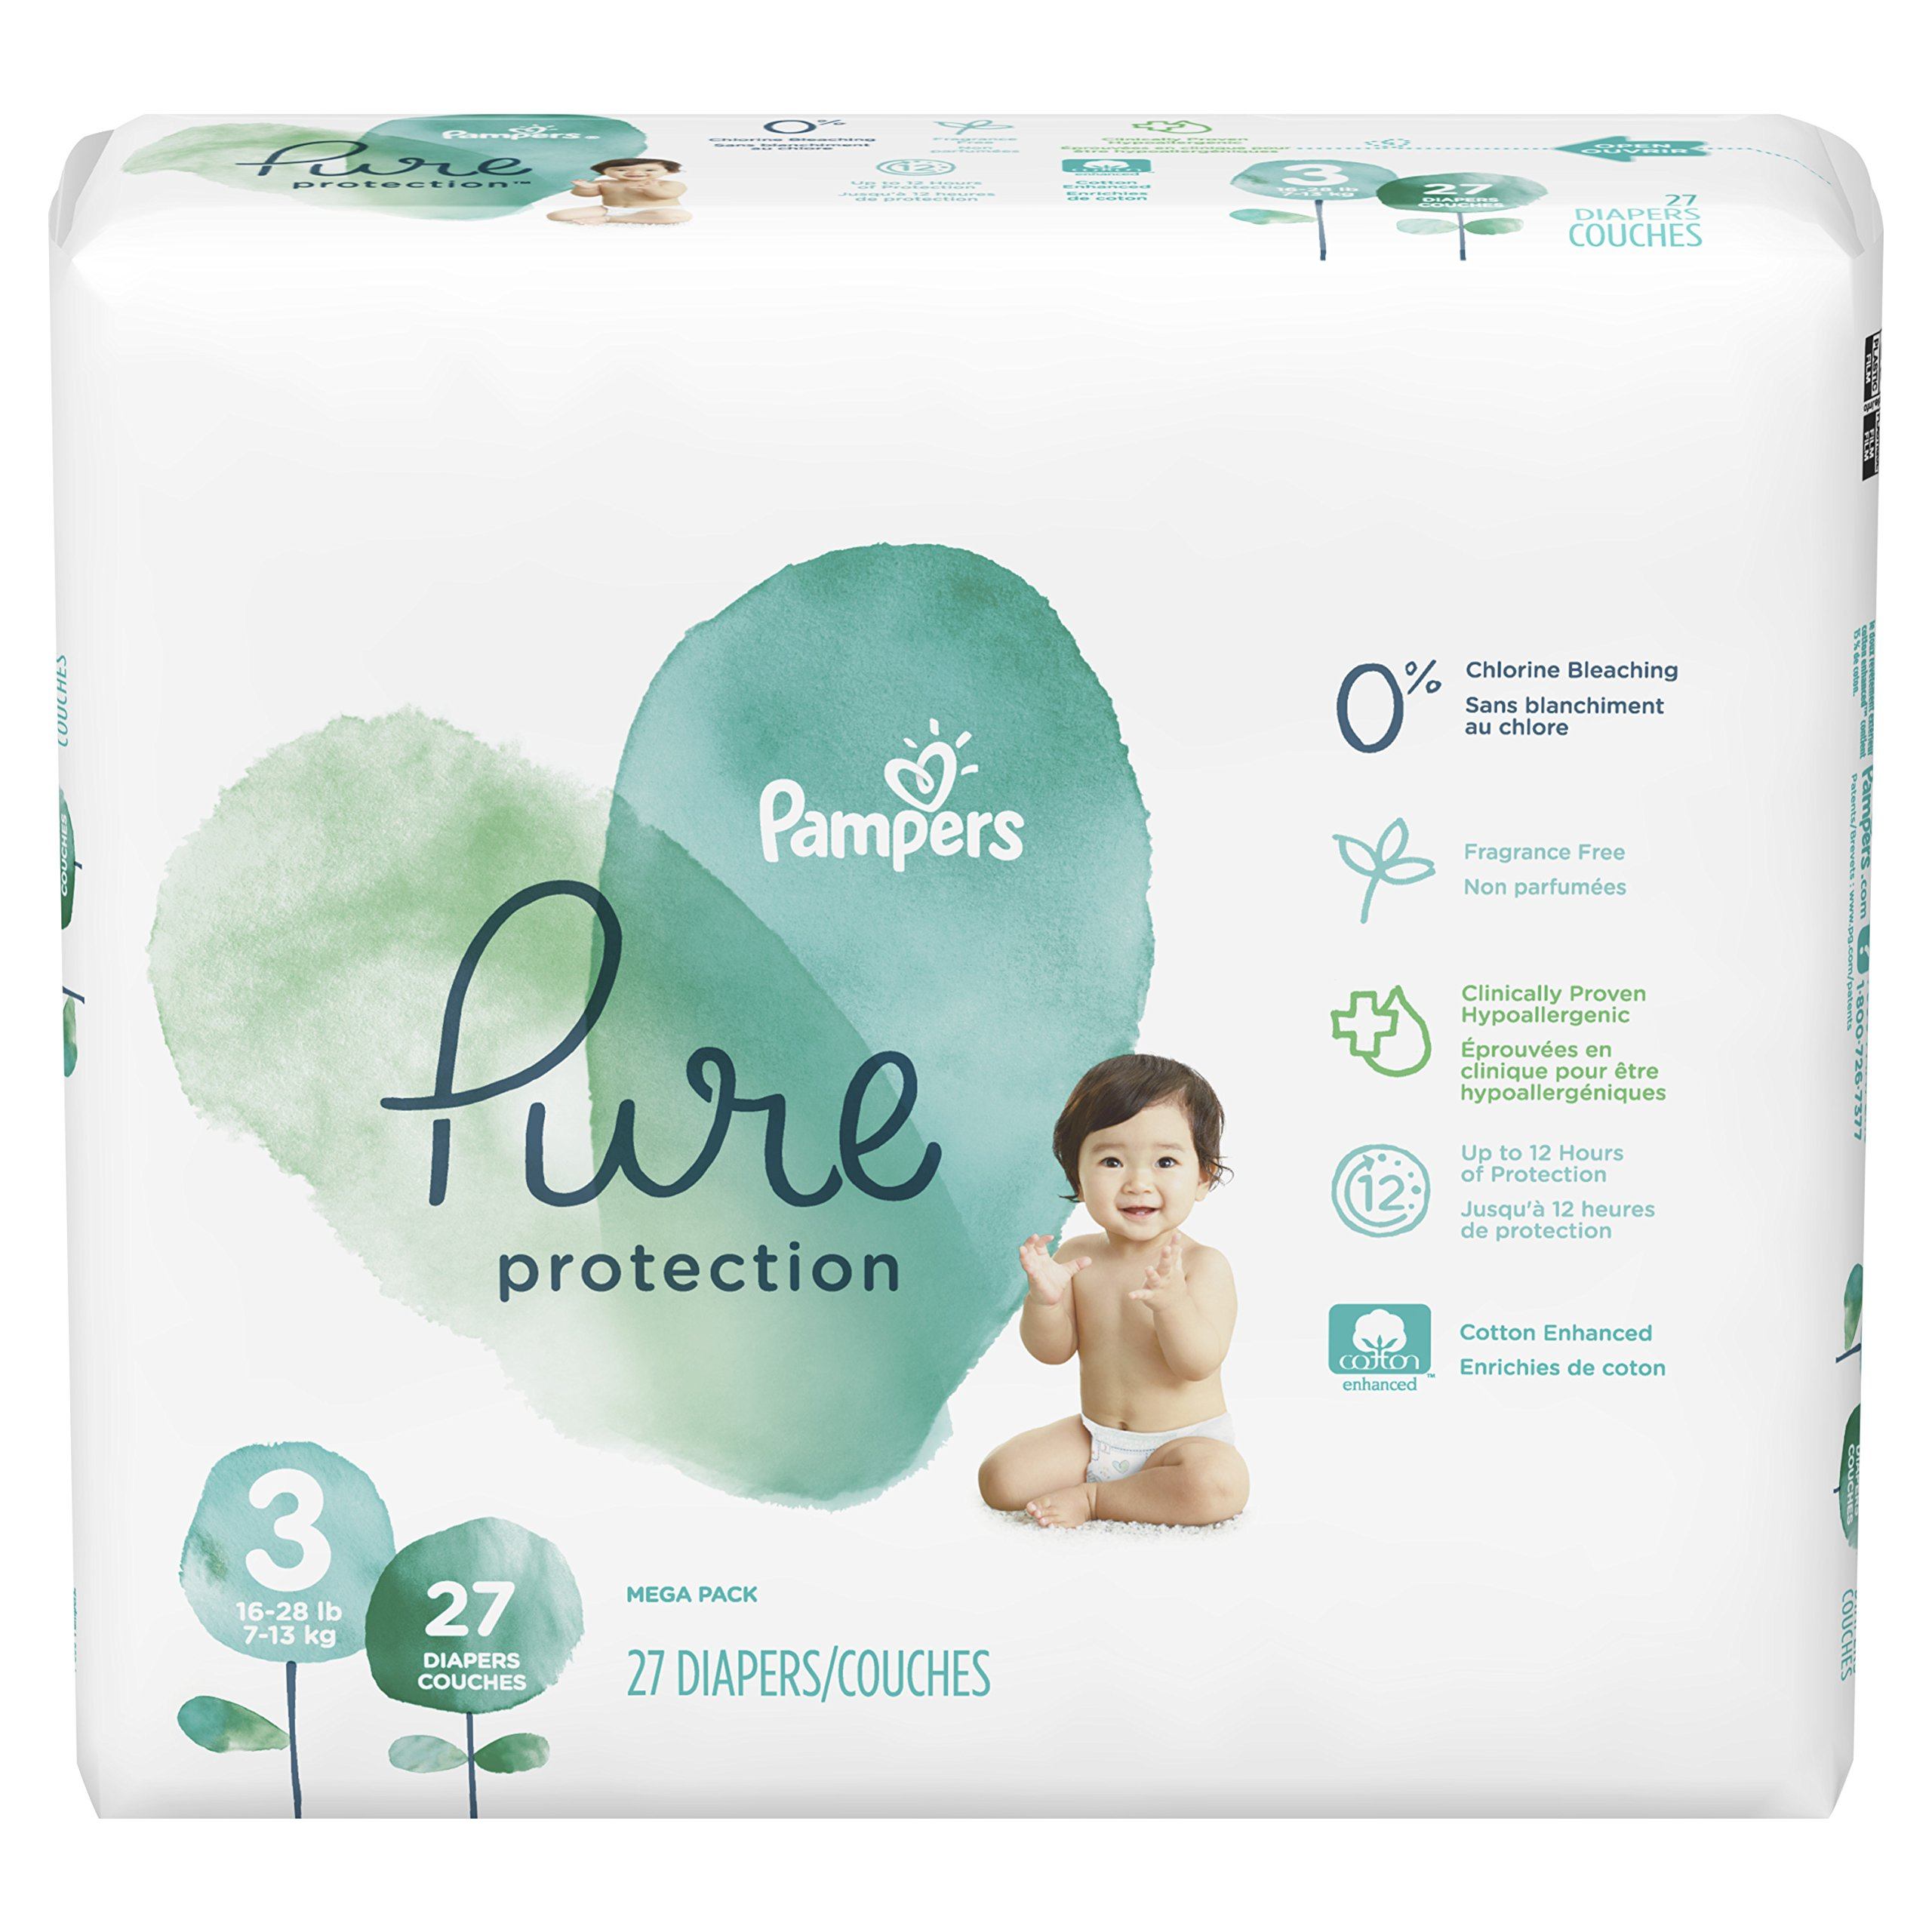 Pampers Pure Protection Disposable Baby Diapers, Size 3, 27 Count